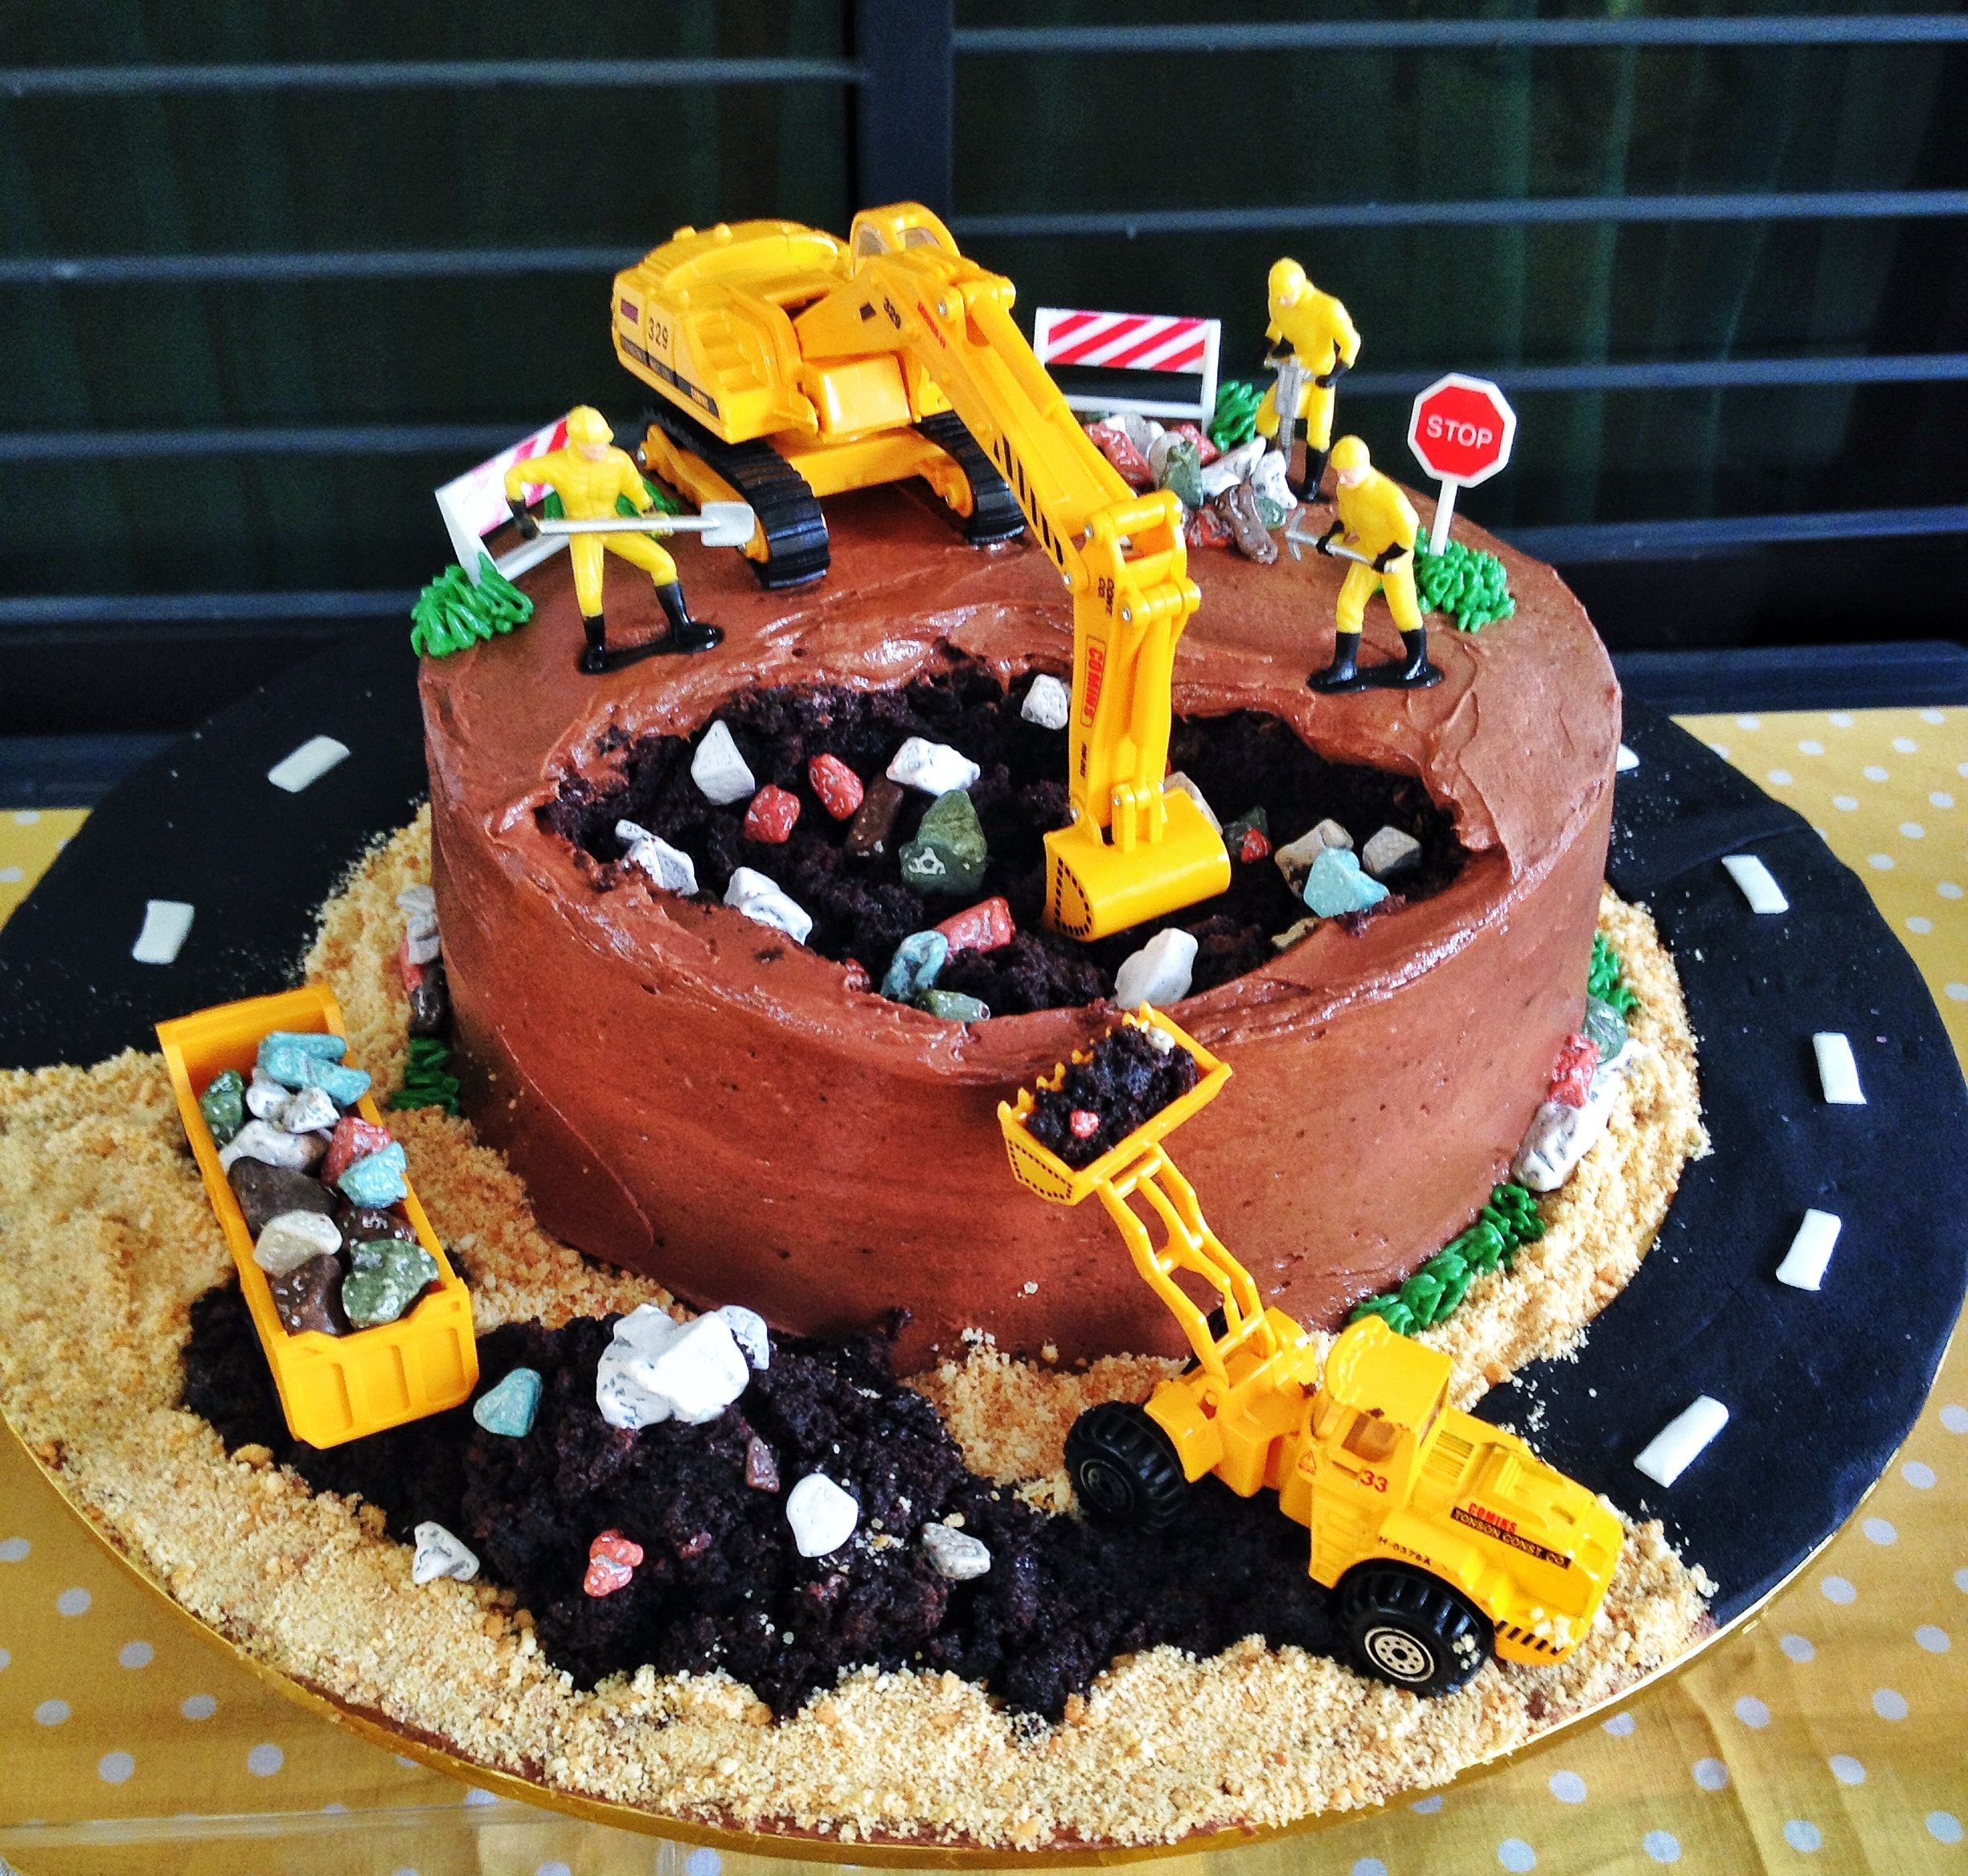 Kids Construction Themed Party Birthday Cake Dessert Table Candy